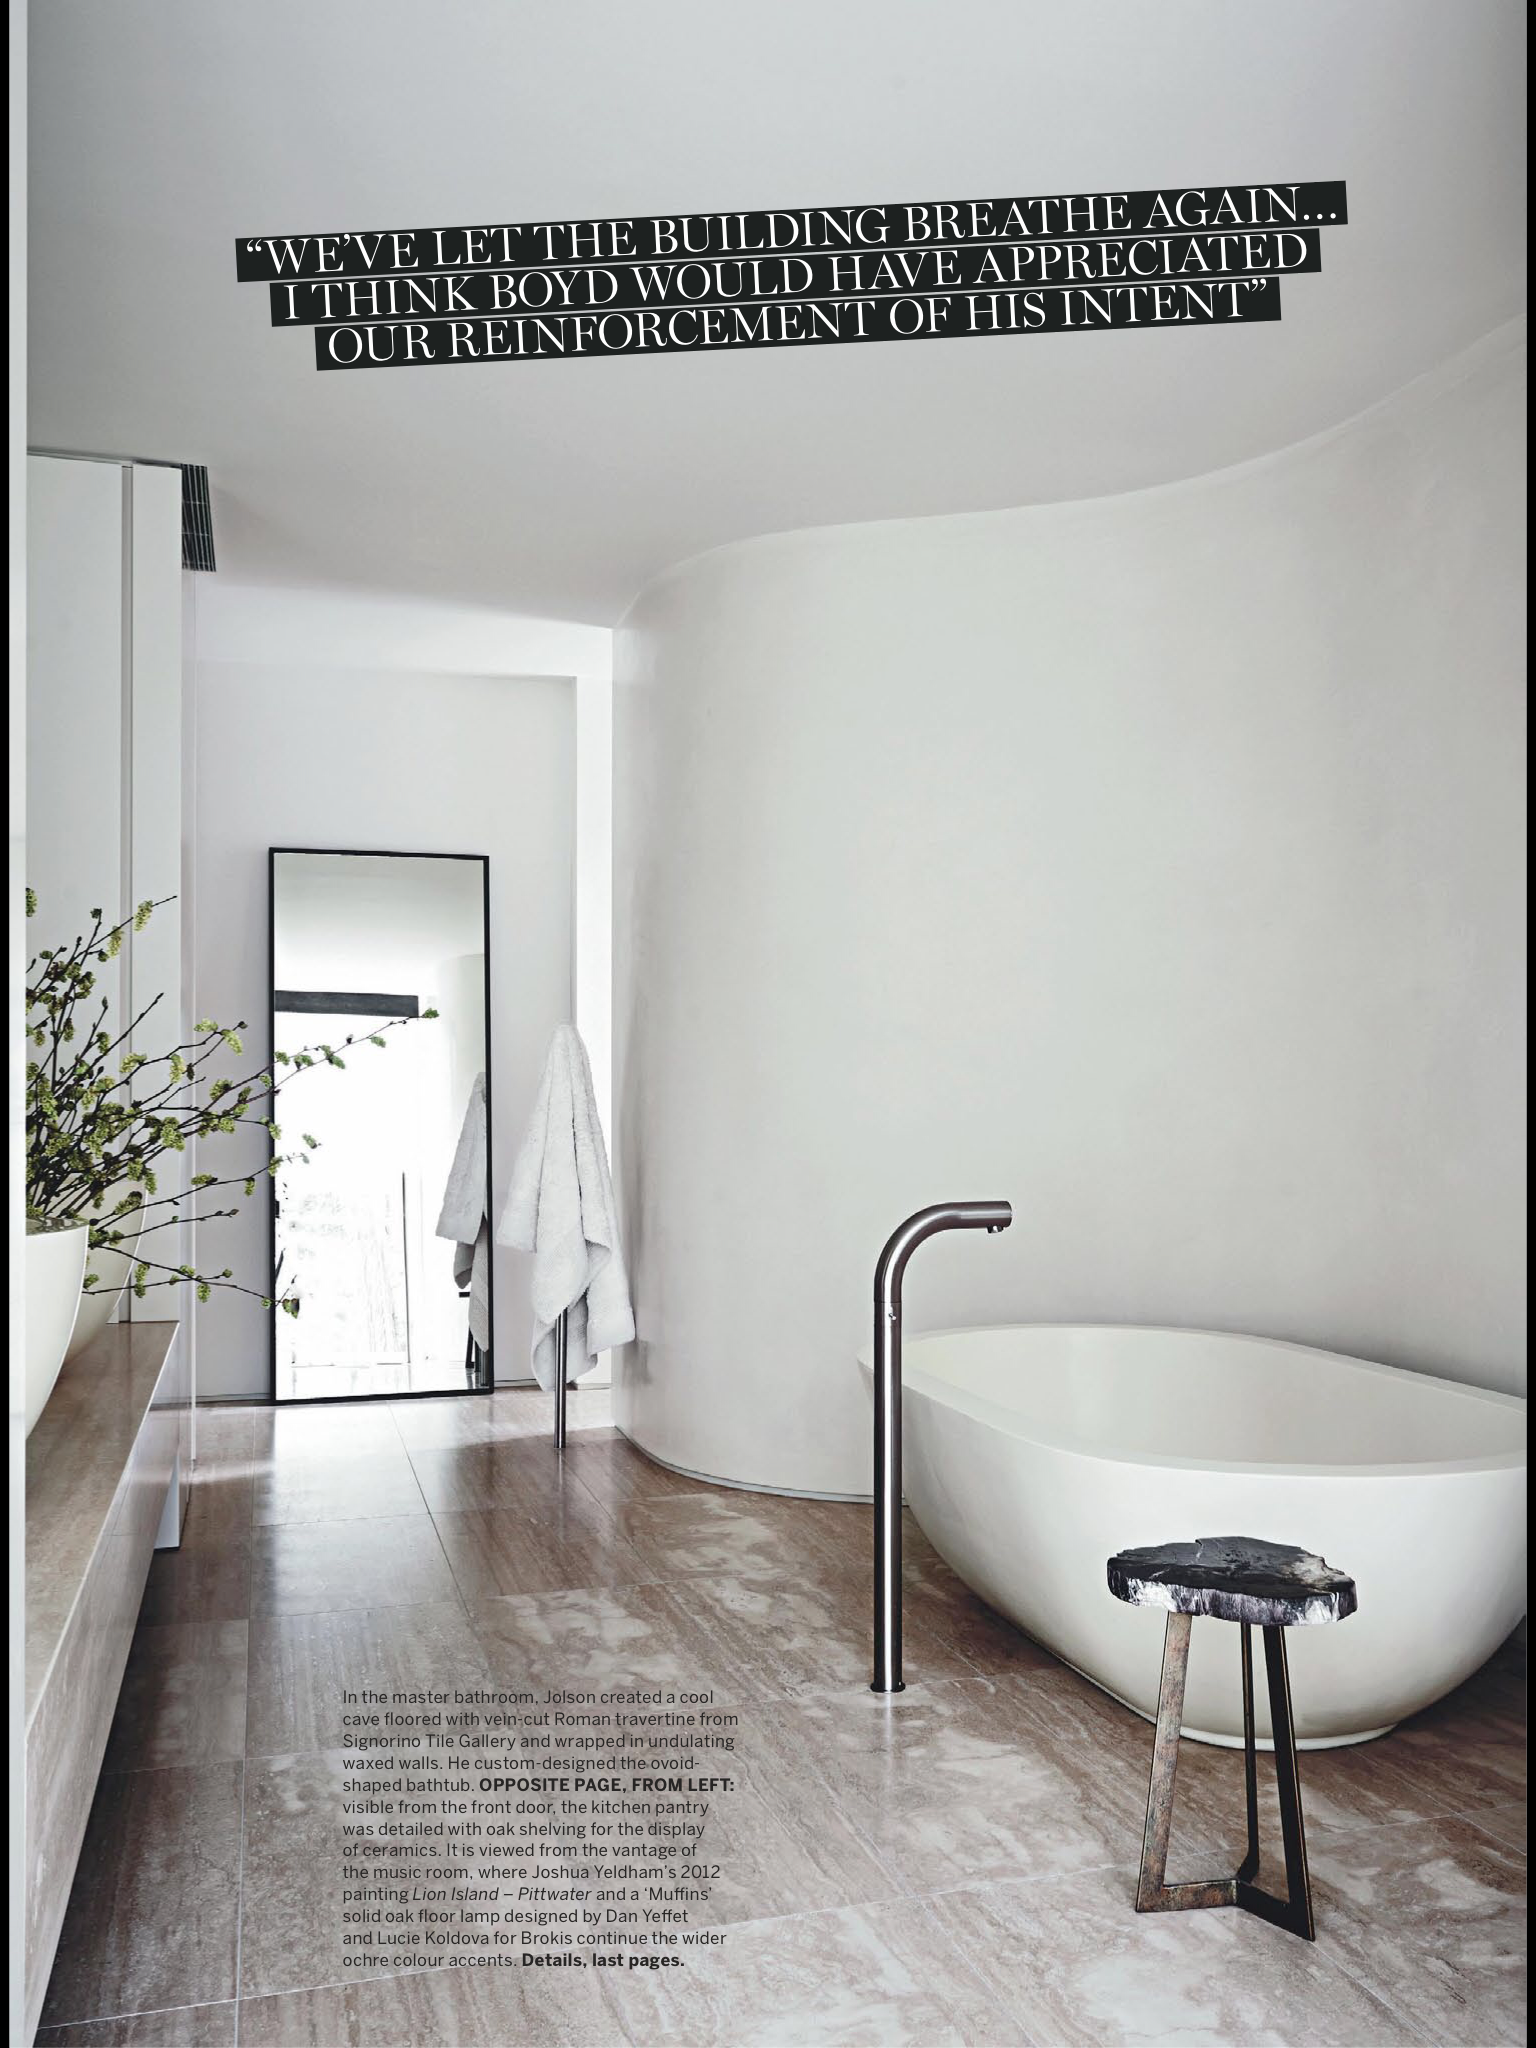 Pin by Kirsten Fordyce-Wheeler on the perfect bath | Pinterest ...